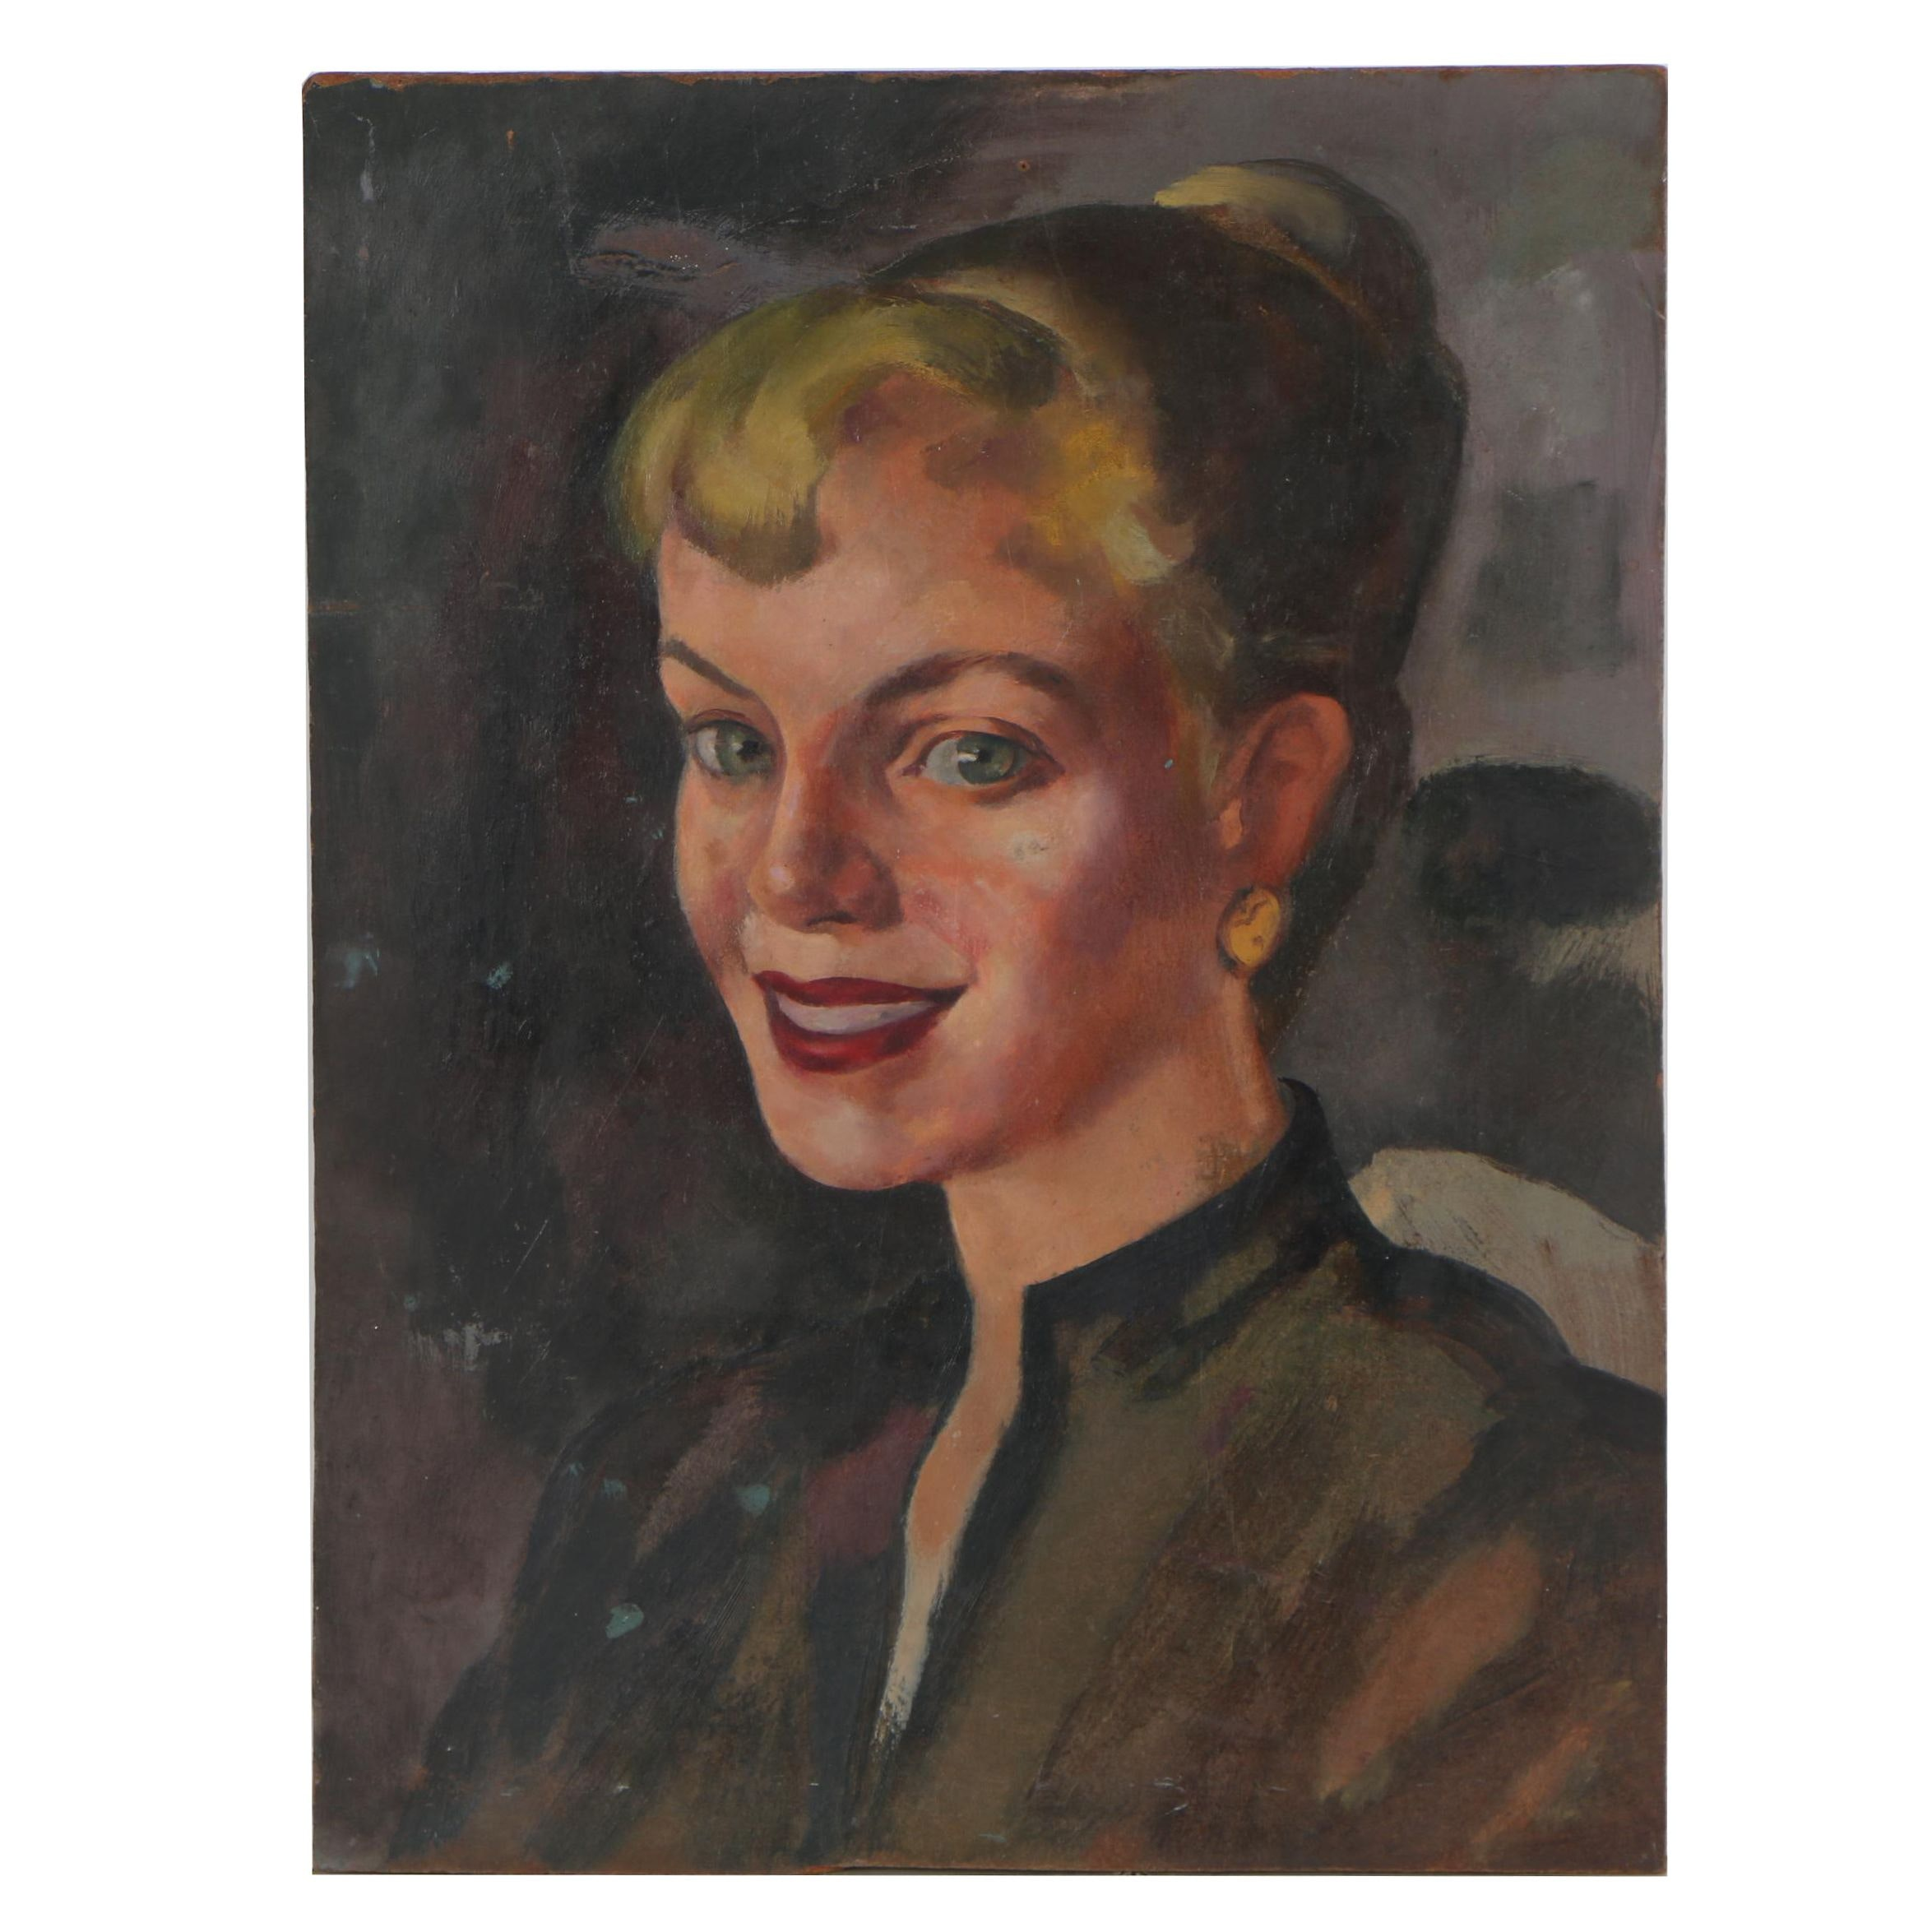 Cathal O'Toole Portrait Oil Painting, mid 20th Century